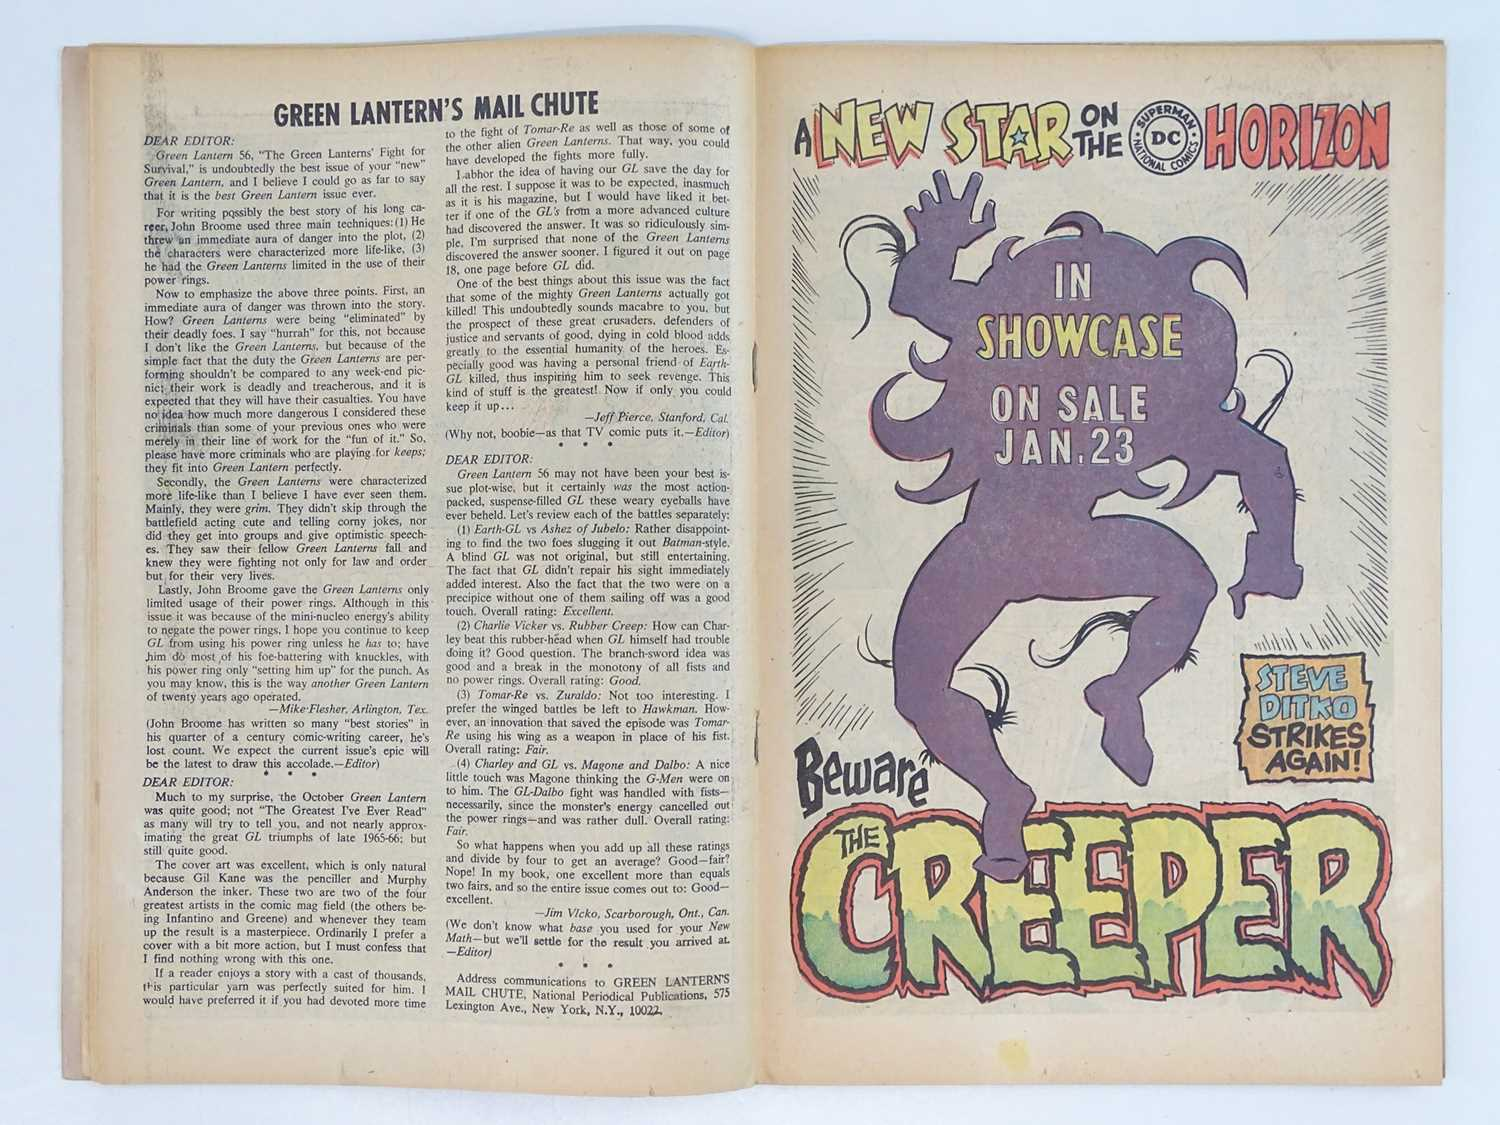 GREEN LANTERN #59 - (1968 - DC - UK Cover Price) - Classic DC Cover + KEY Book - First appearance of - Image 5 of 9